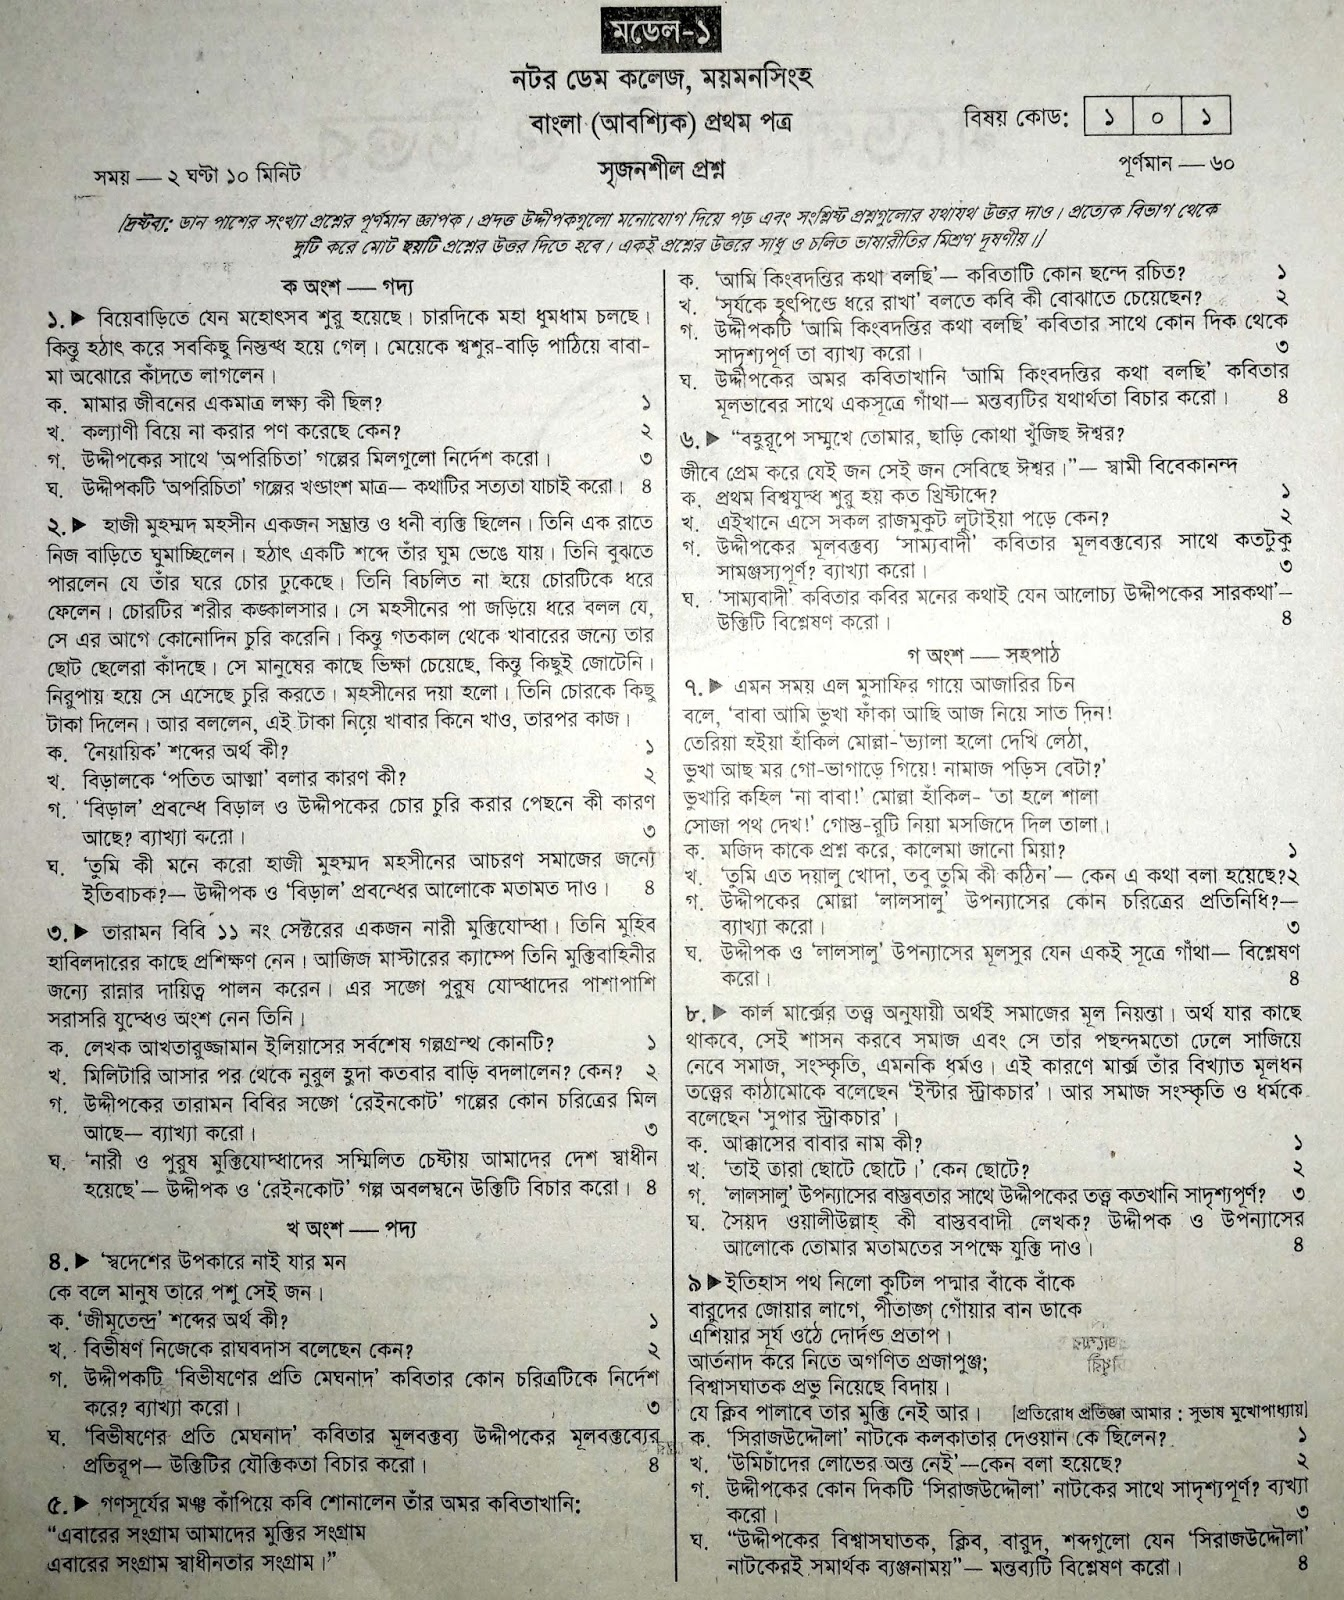 hsc bangla 1st paper model question, question paper, model question, mcq question, question pattern, syllabus for dhaka board, all boards